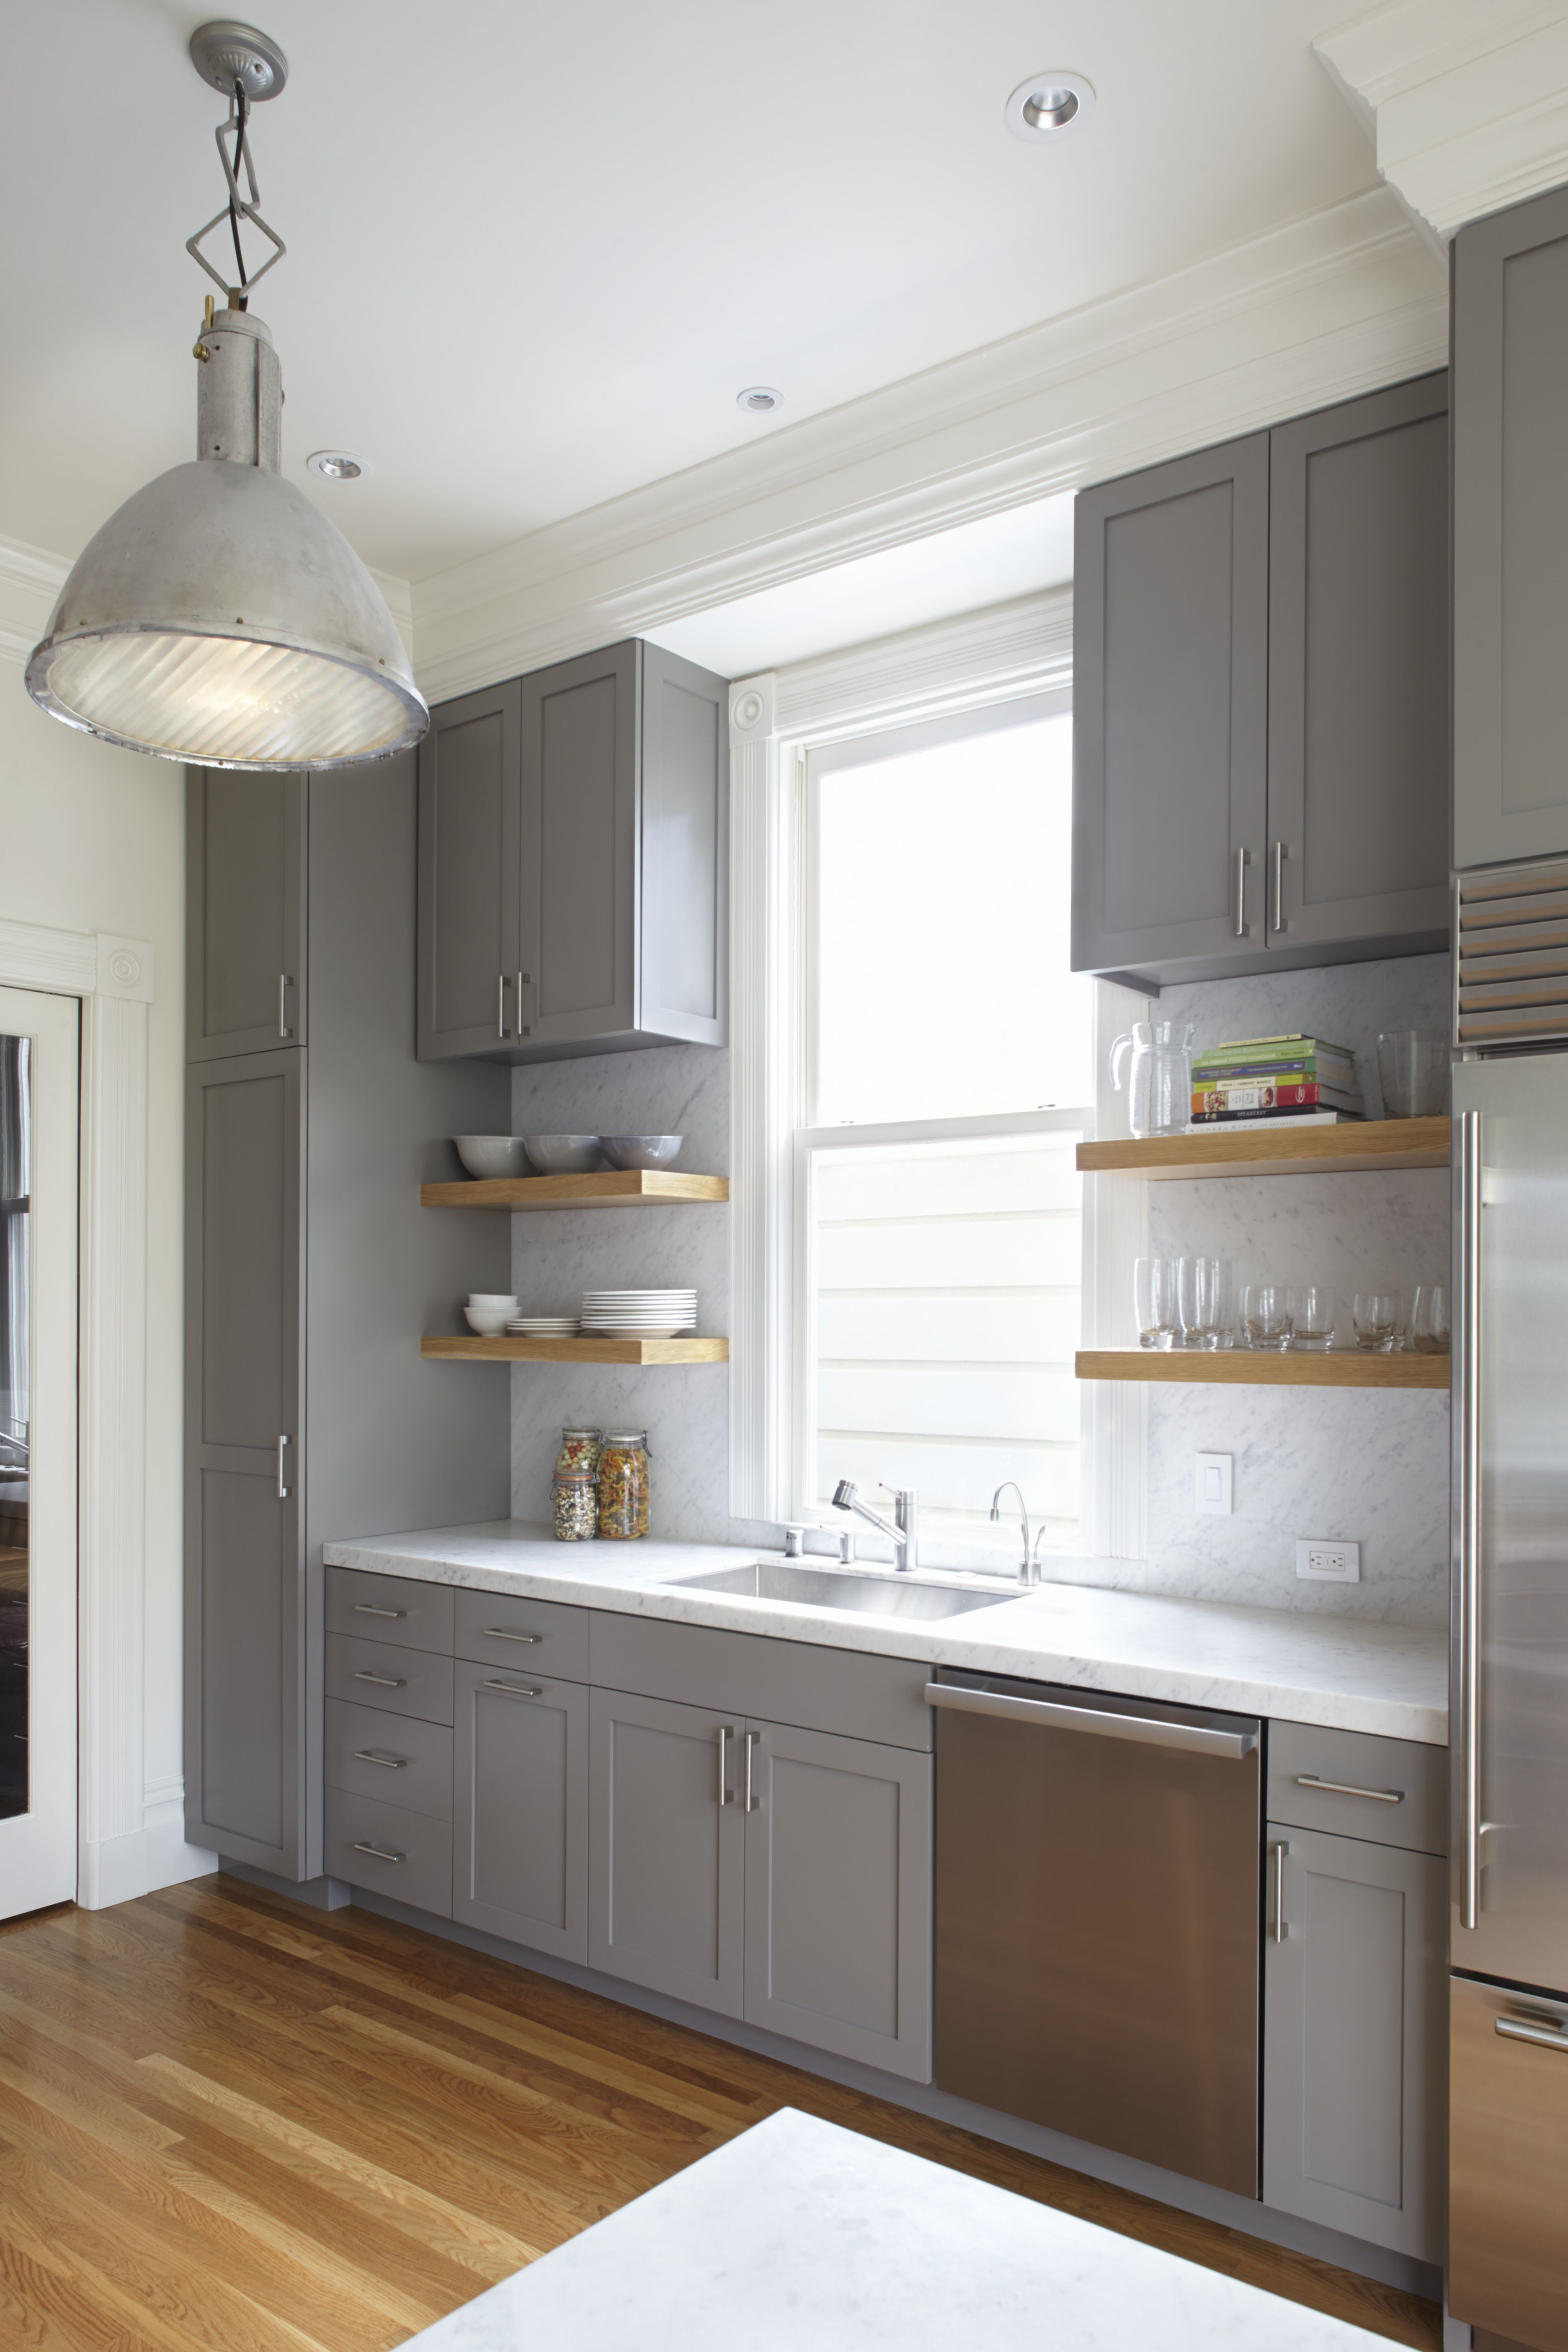 Vertical Backsplash Google Search Shaker Style Kitchen Cabinets Painted Kitchen Cabinets Colors Tall Kitchen Storage